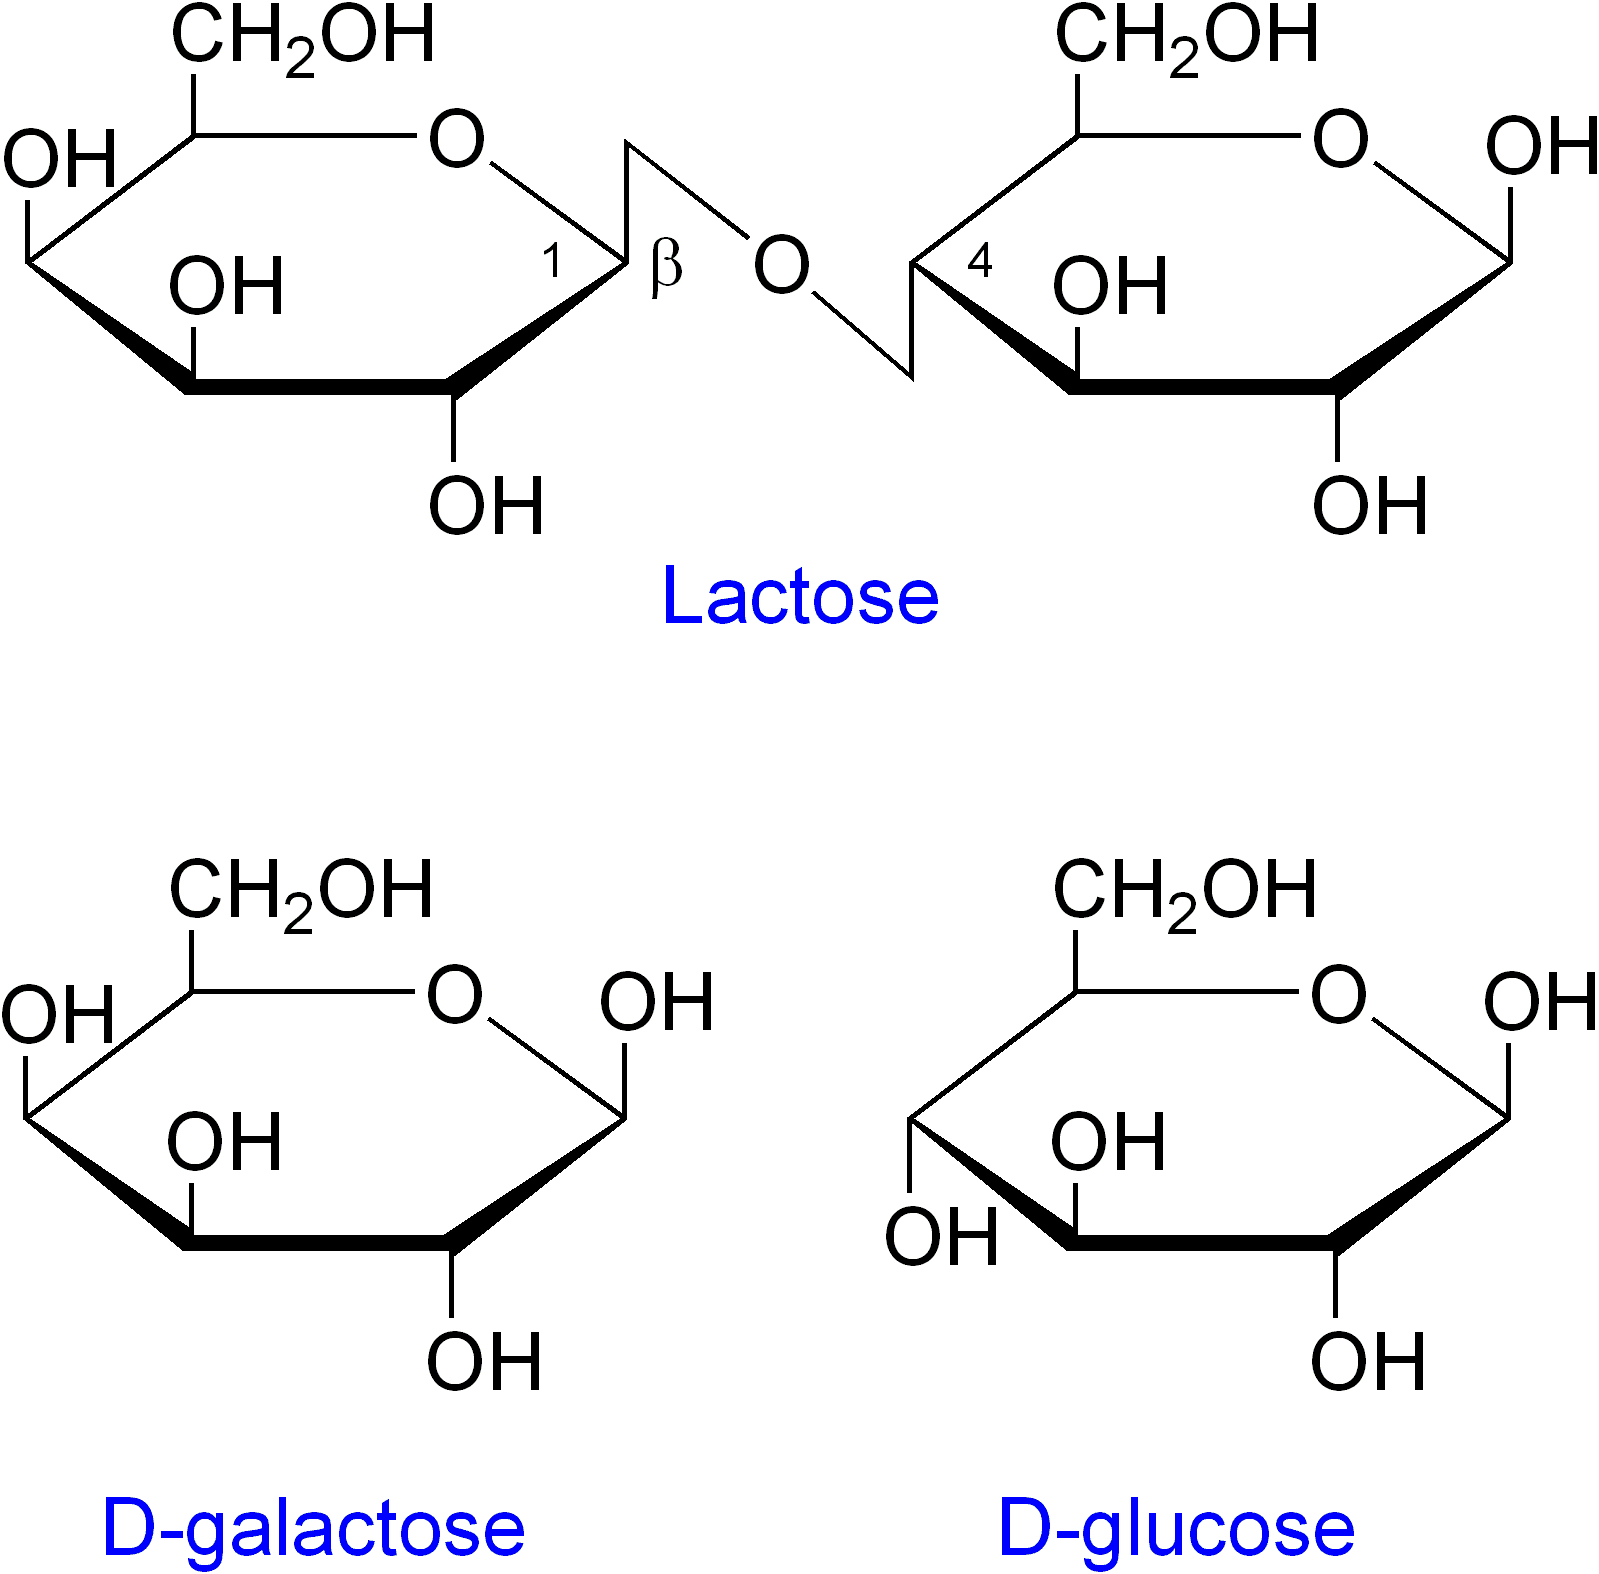 File:Lactose etc.png - Wikipedia